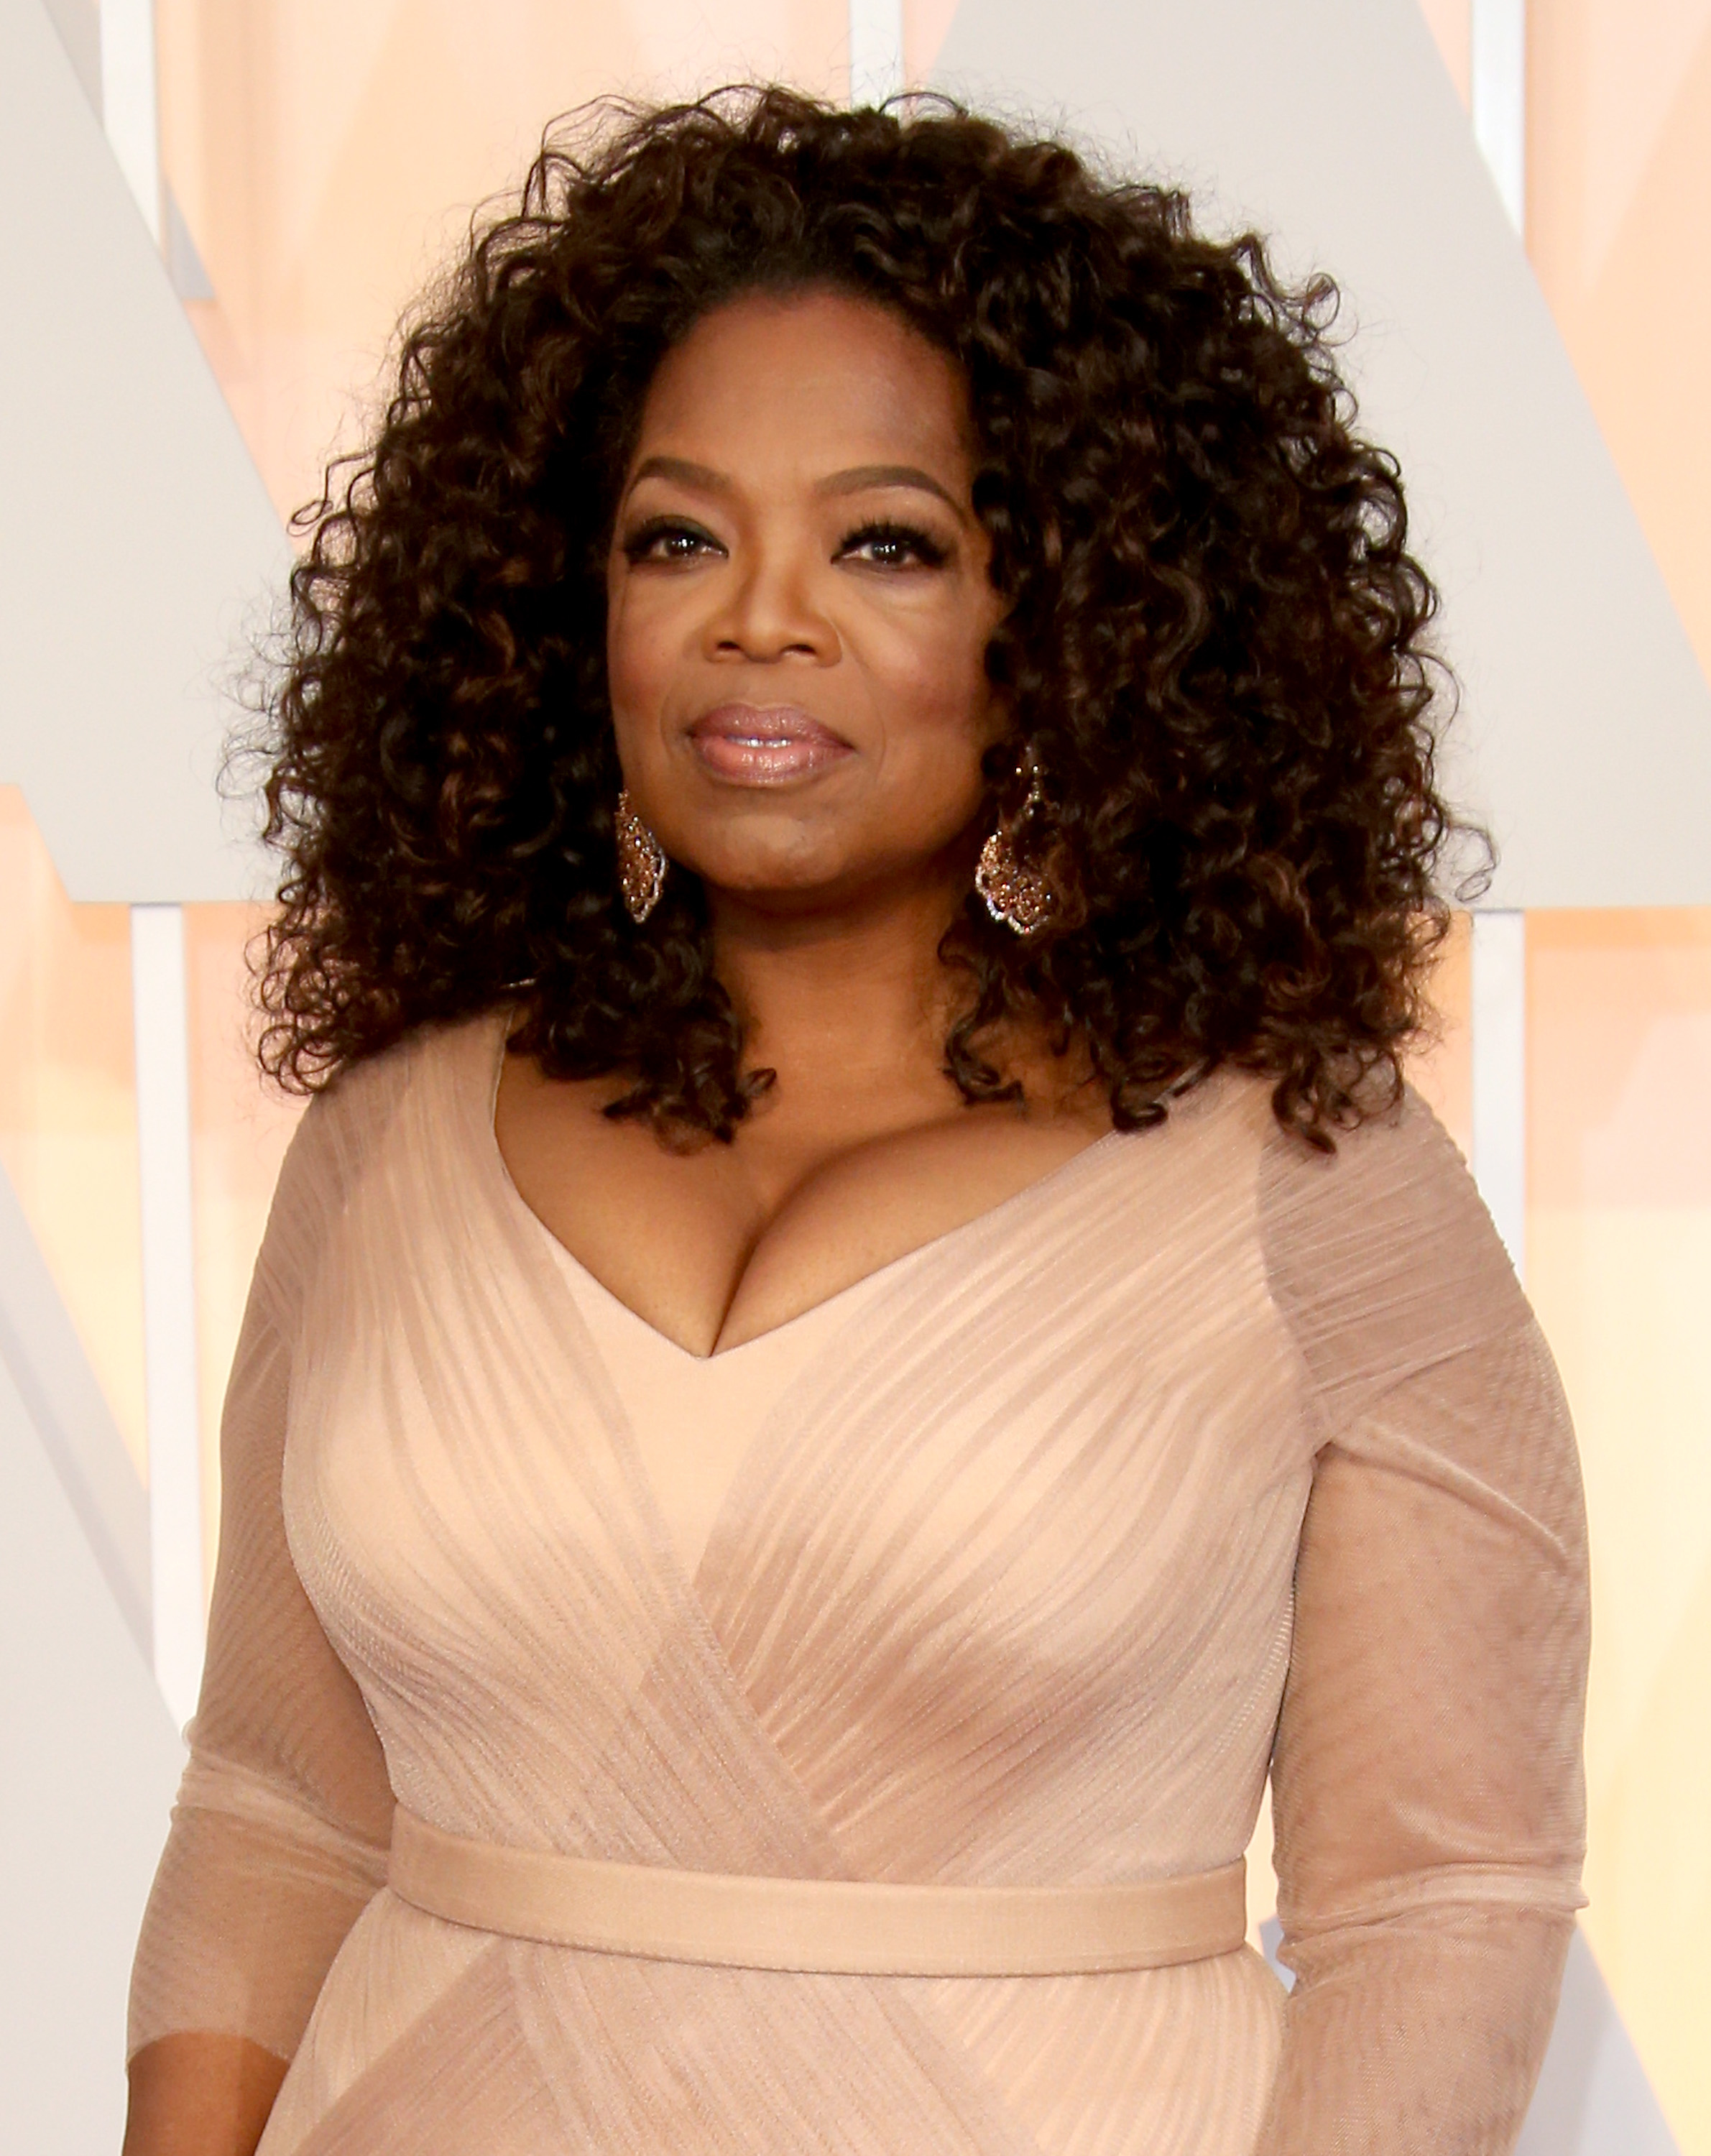 Oprah Winfrey at the 87th Annual Academy Awards in Los Angeles on Feb. 22, 2015.